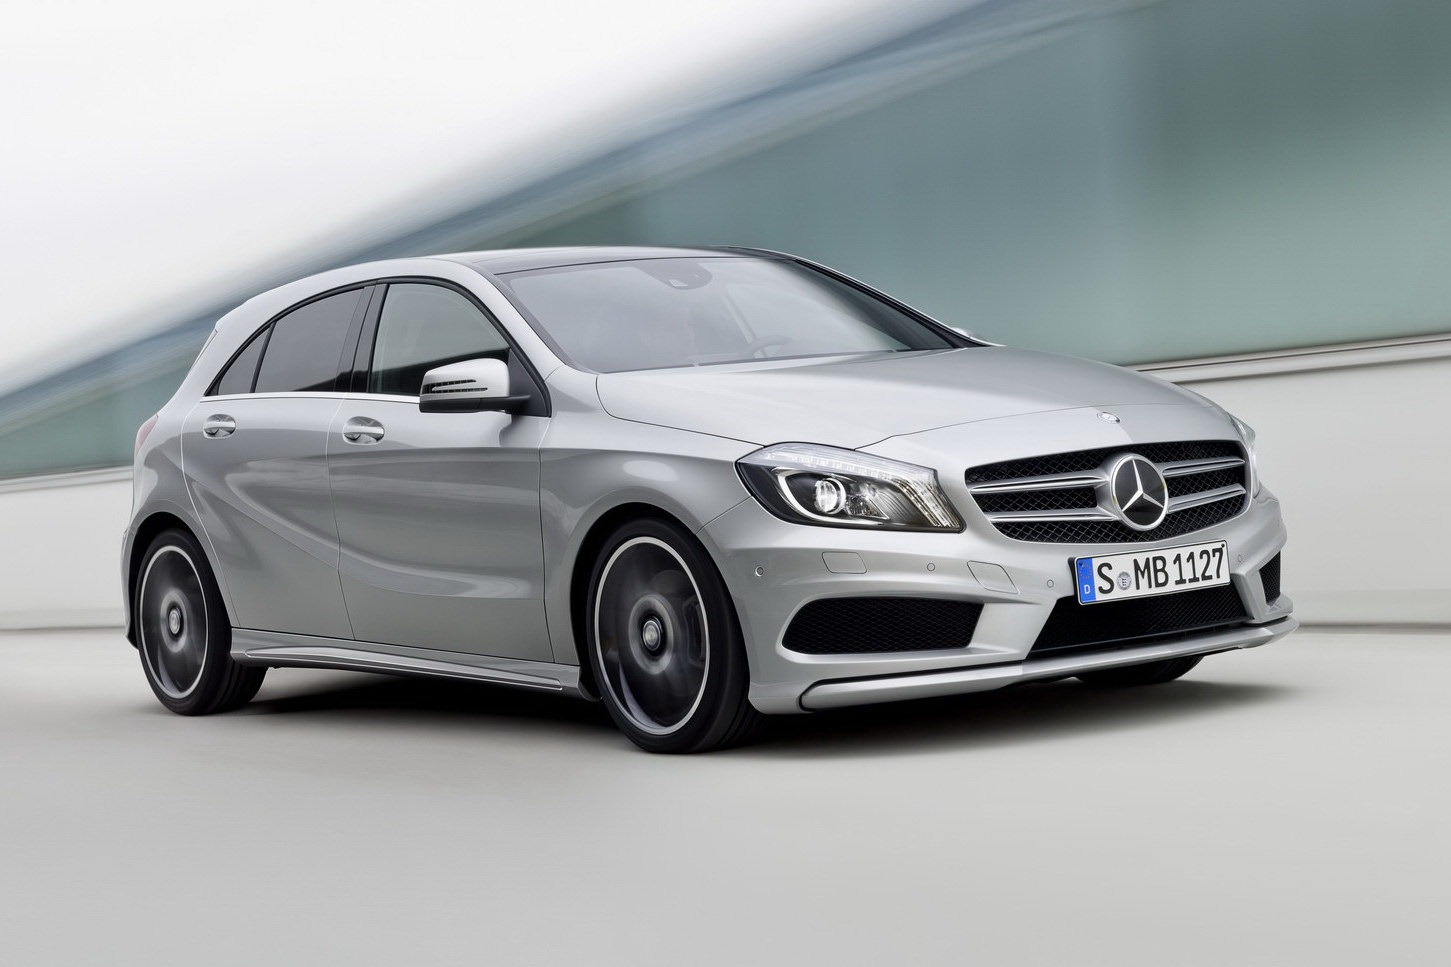 New Mercedes Benz A Class Launched In The Uk Priced From